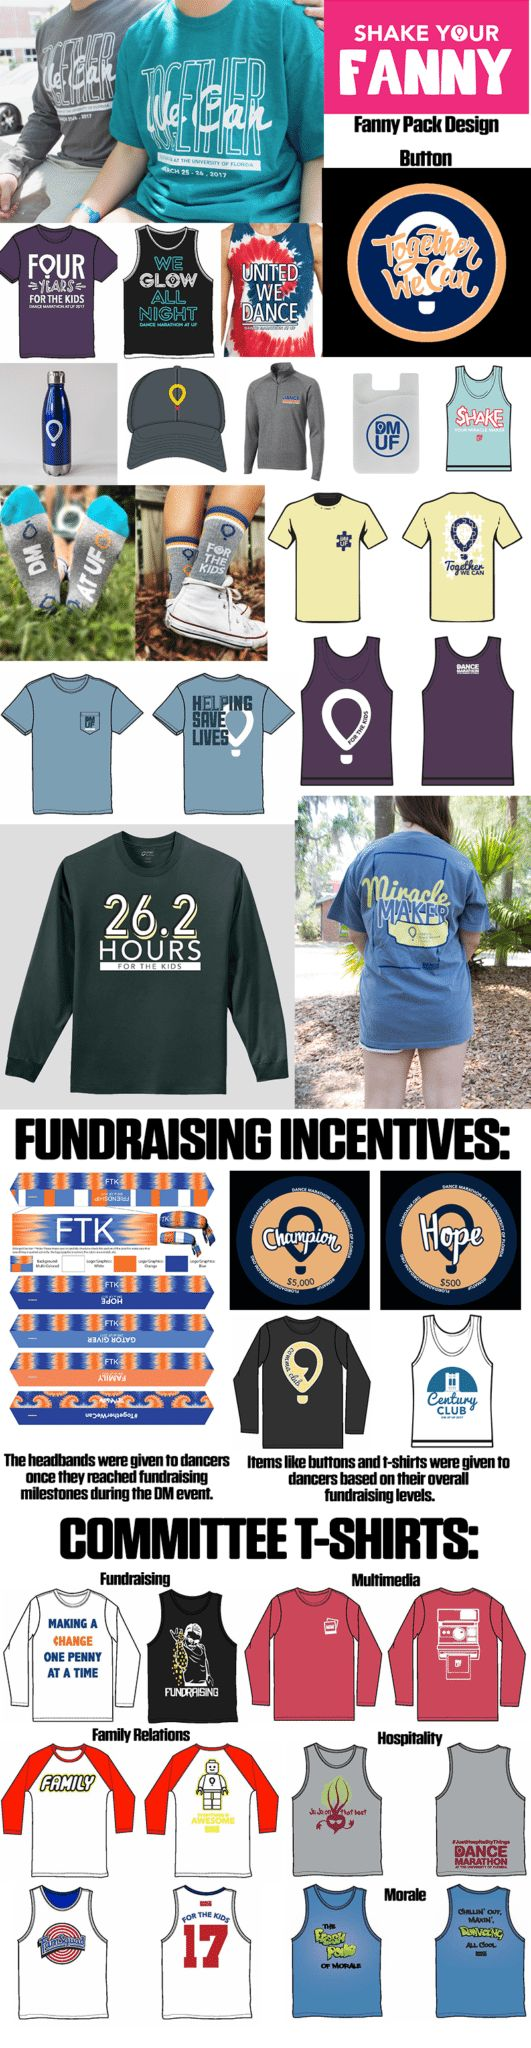 Miracle Network Dance Marathon programs often use merchandise to help spread awareness about their organization, recognize theirhospital and sponsors, and as mementos or incentives for dancers andsupporters.Merchandise can be any